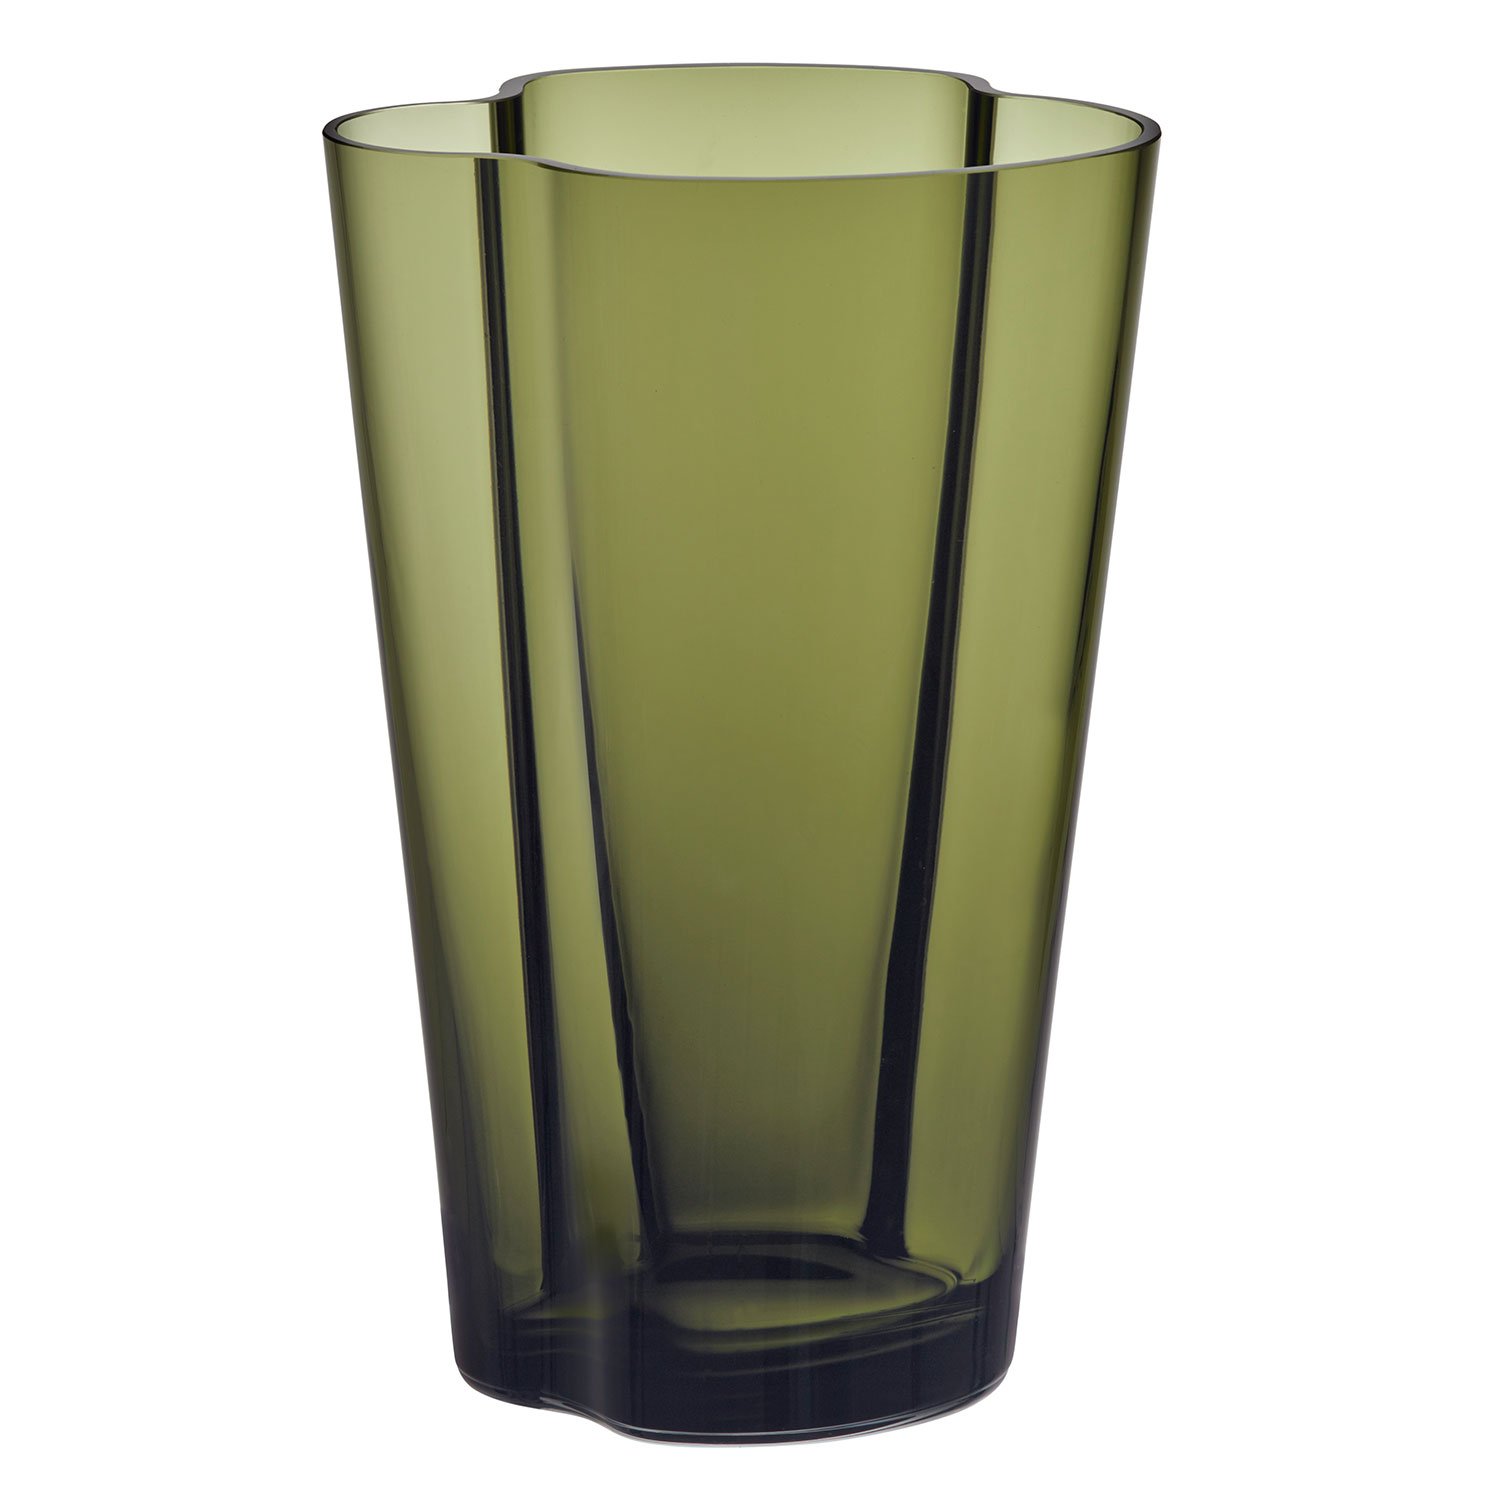 collections scl p vase com collection aalto hei size alvar green moss iittala wid